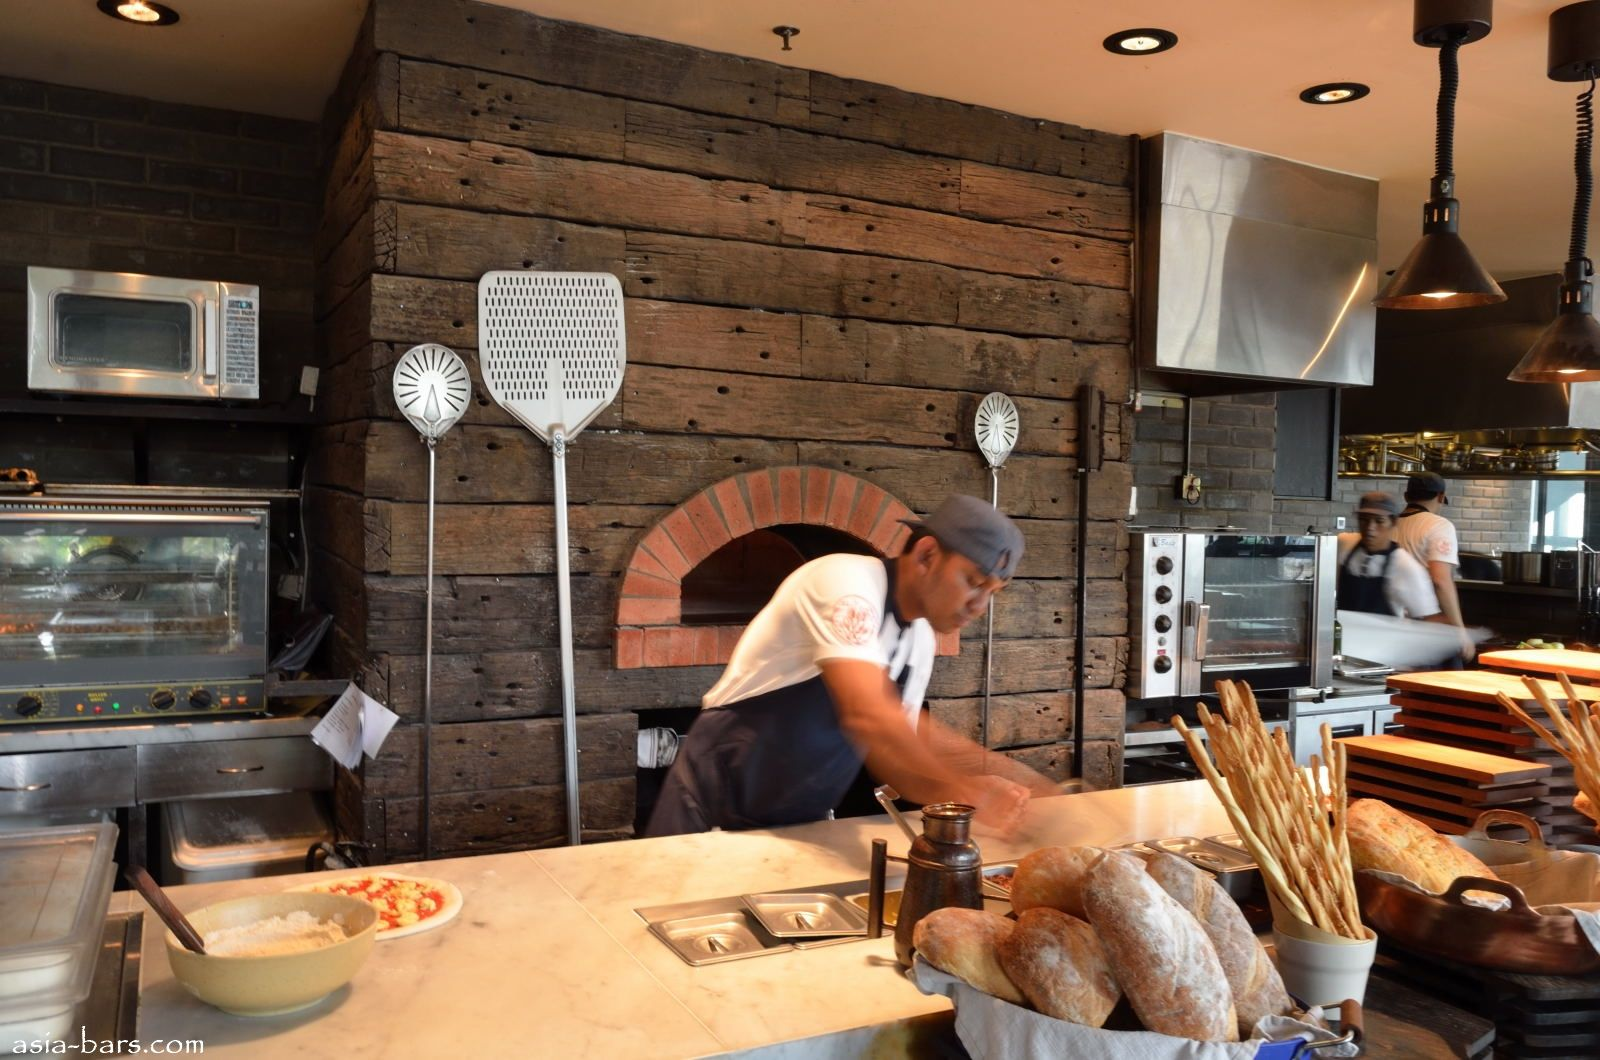 K ptal lat a k vetkez re pizza interior forte update for Kitchen design restaurant